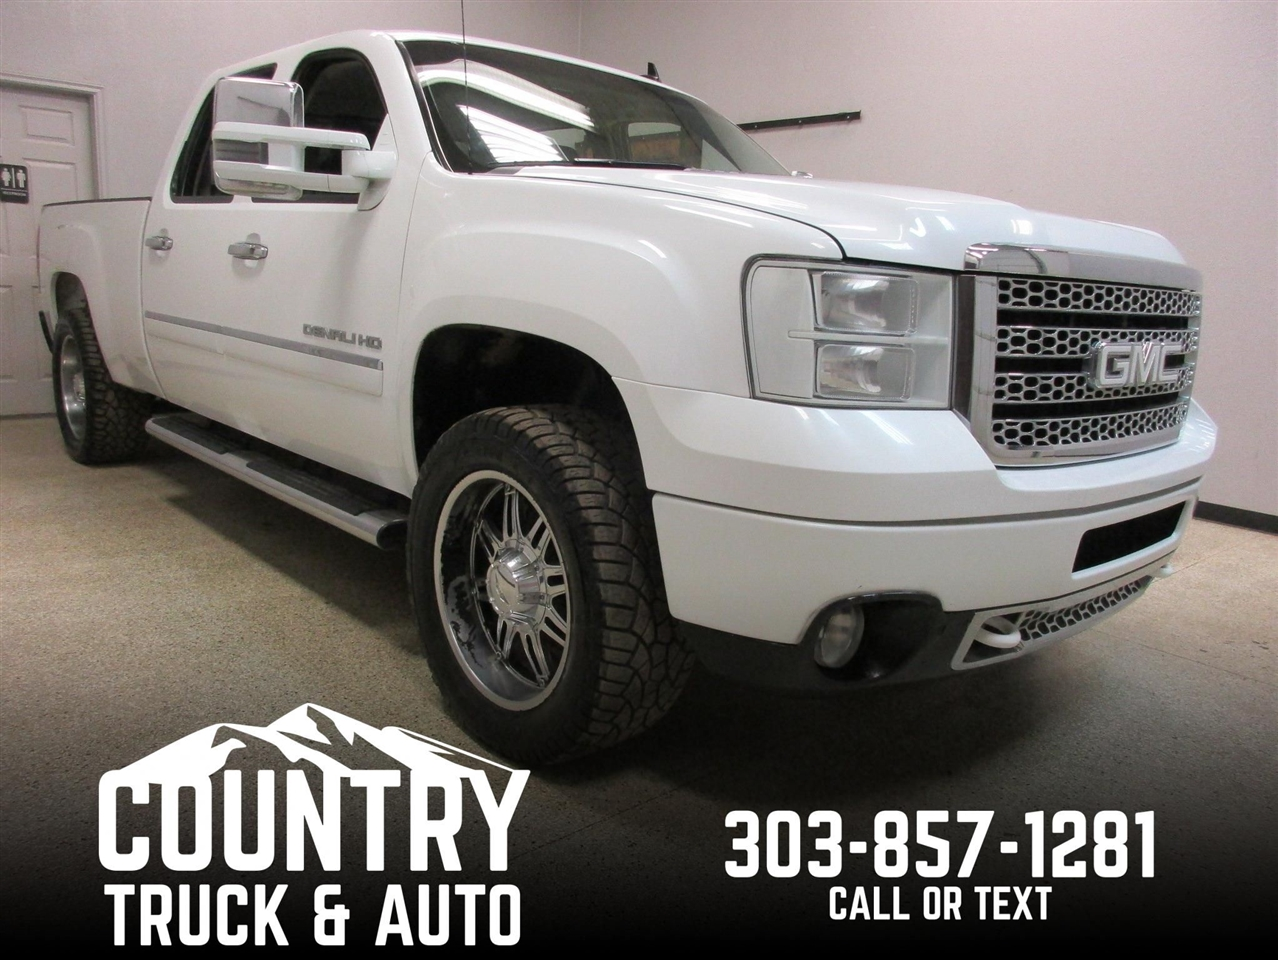 2013 GMC Sierra 2500HD Denali Crew Cab Short Bed 4WD